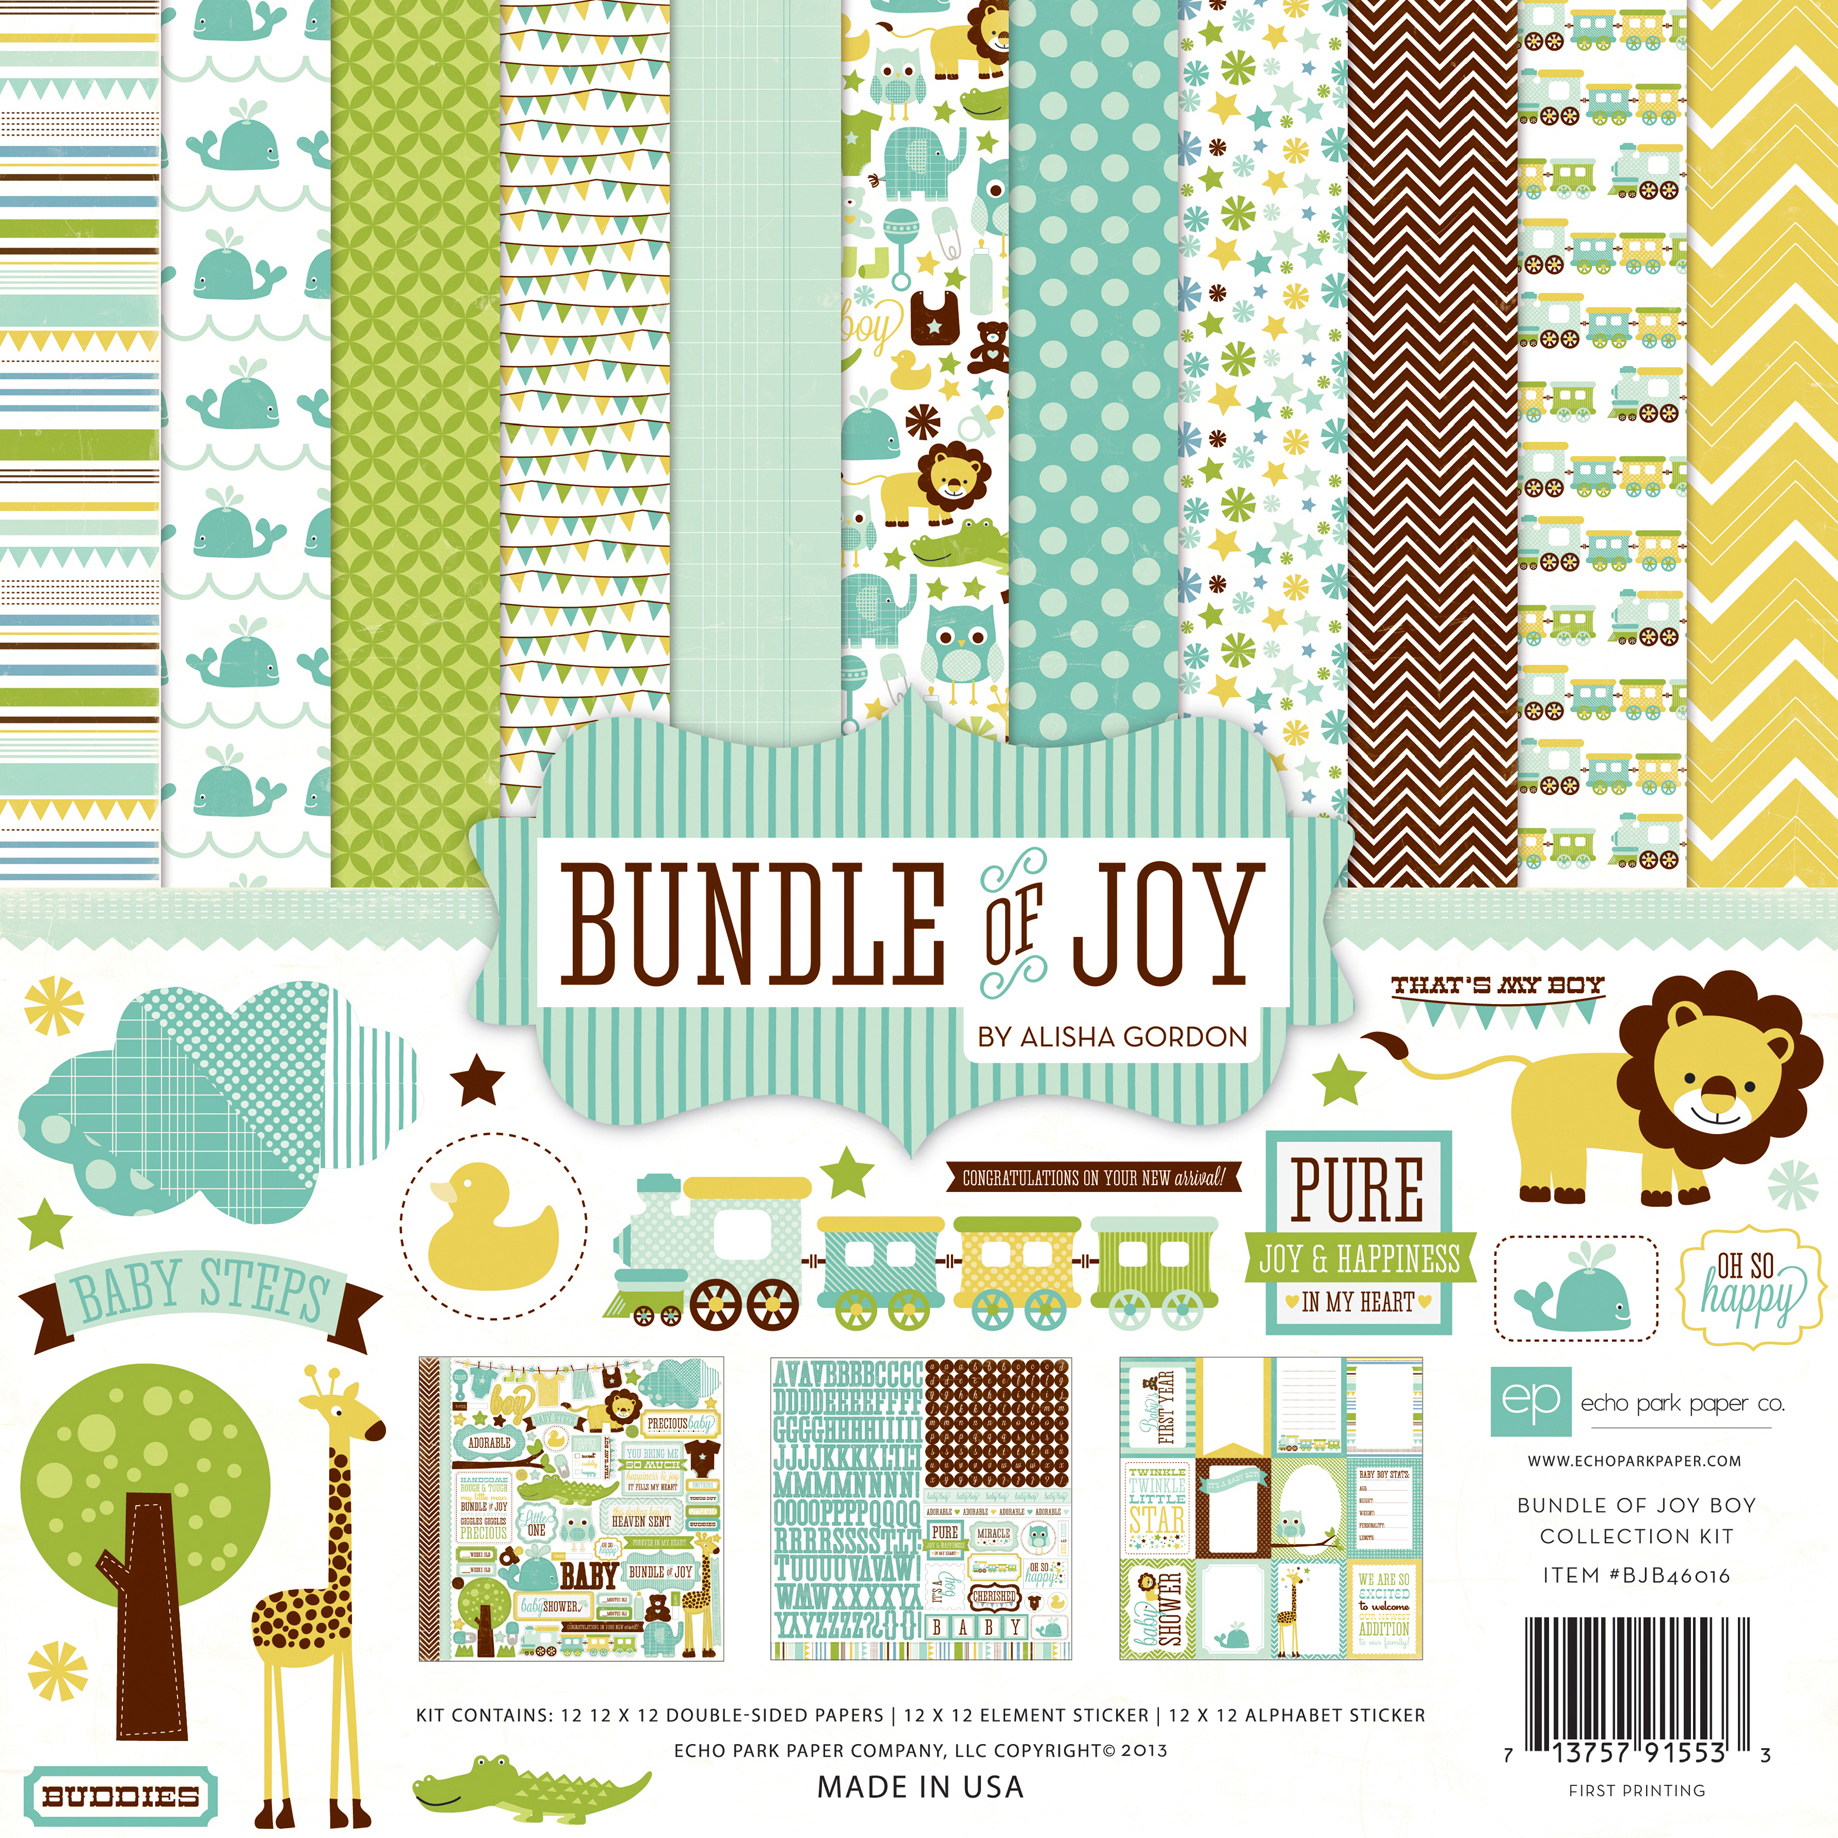 Echo Park Paper Bundle Of Joy Boy Collection Kit